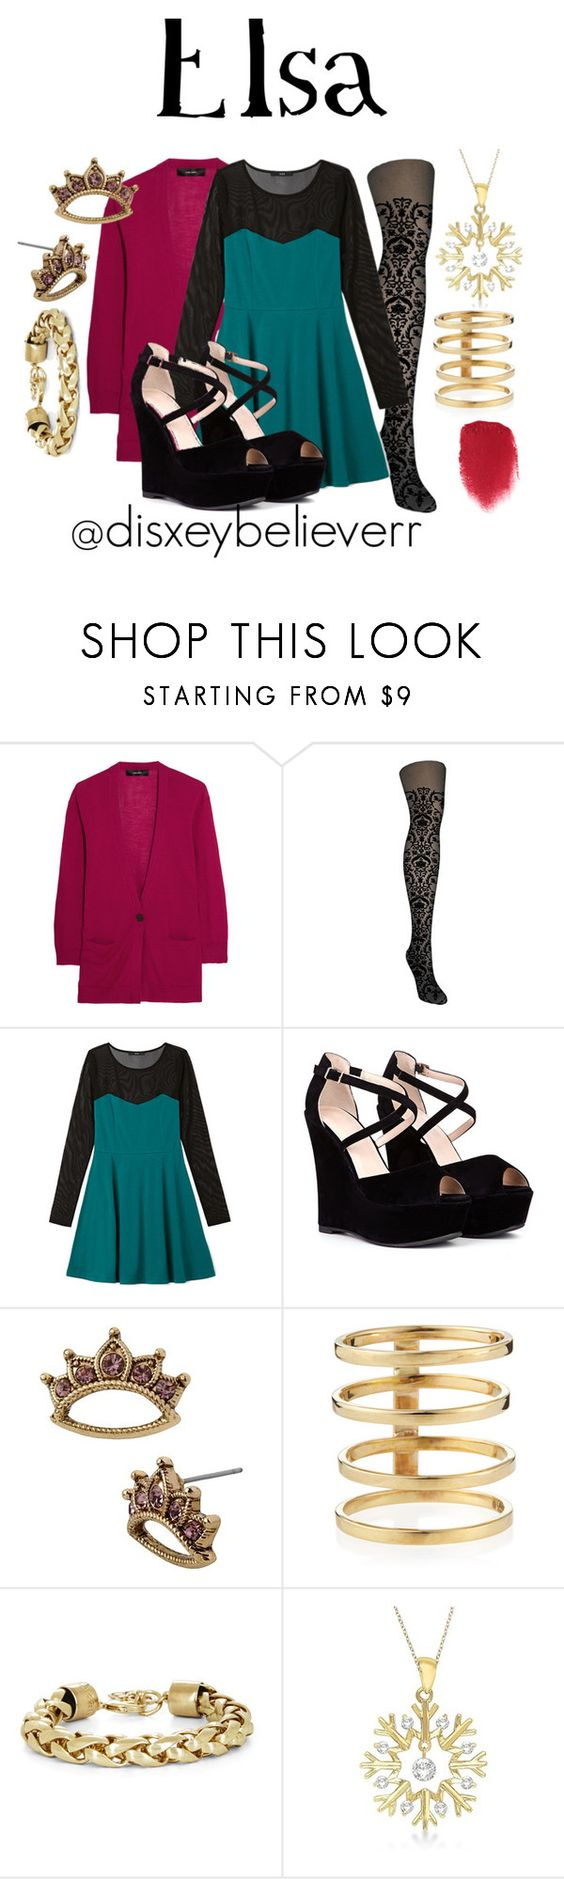 Elsa by disneybelieverr on Polyvore featuring Forever 21, Isabel Marant, Betsey Johnson, Lana, BCBGMAXAZRIA, Allurez and Anna Sui